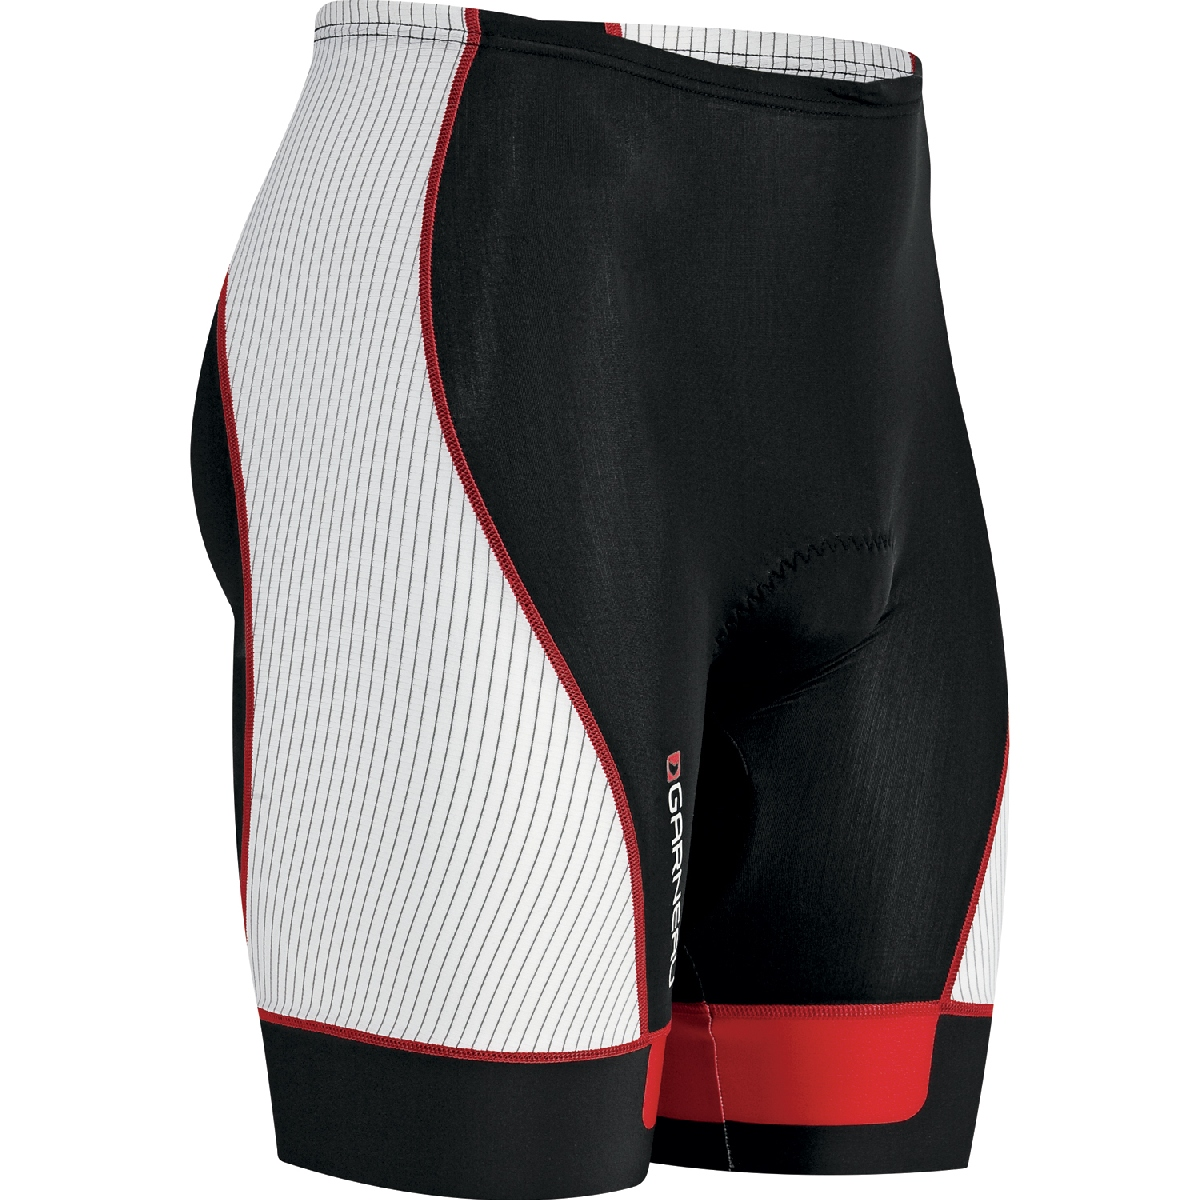 Louis Garneau Pro 8 Triathlon Short Men's Size XL Black Ginger U.S.A. & Canada